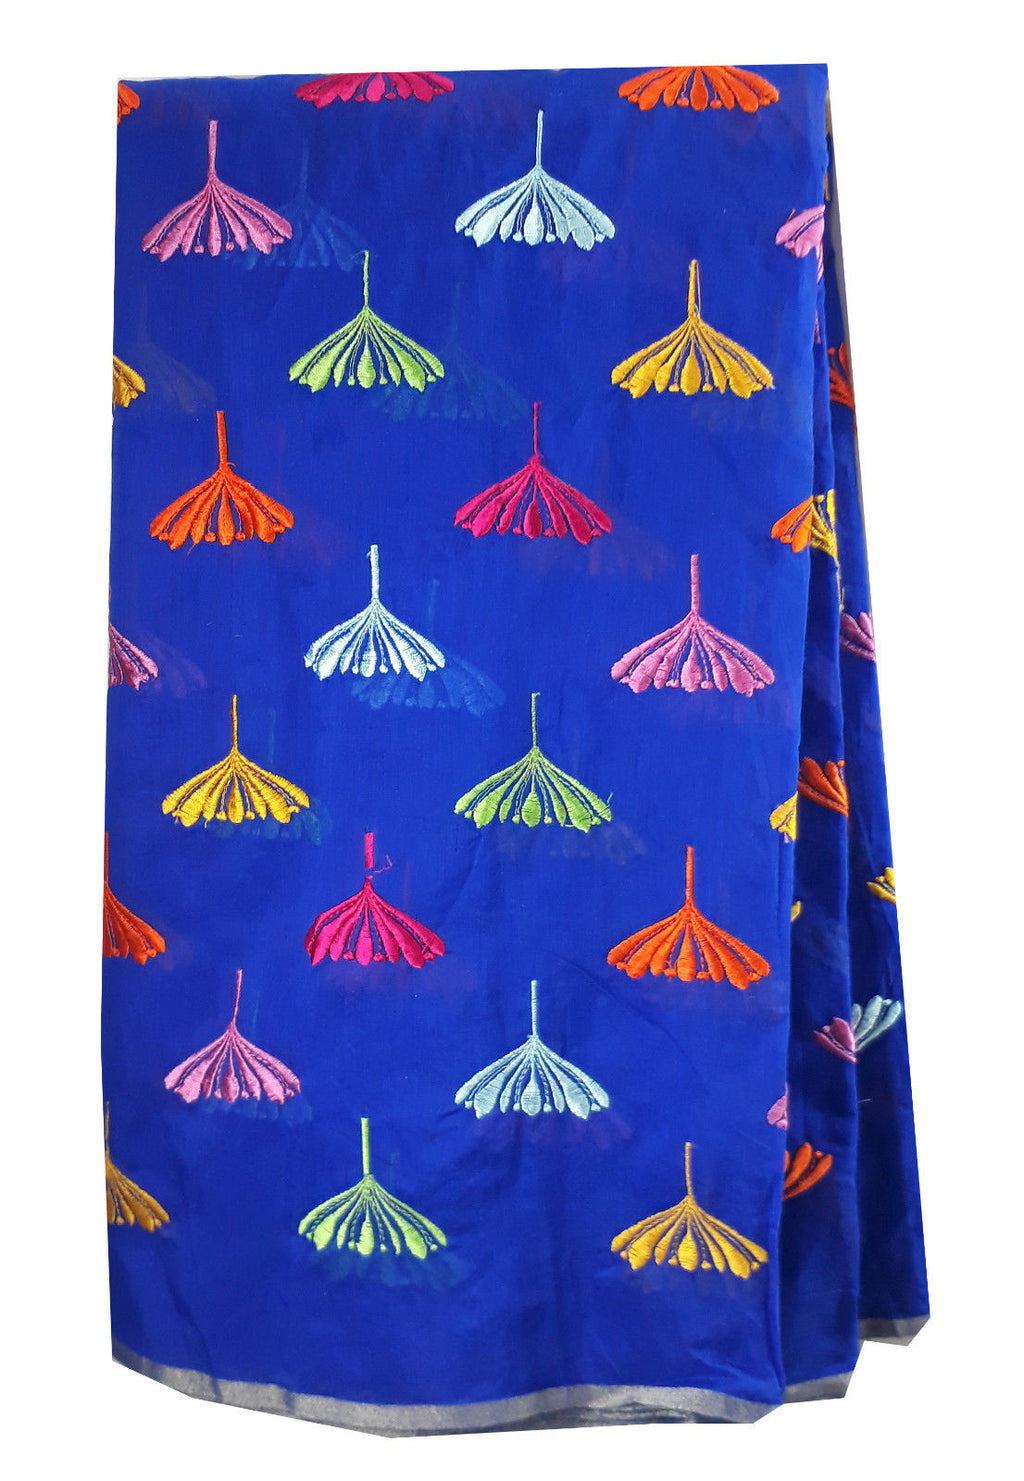 dress fabric online india buy embroidered fabric Chanderi Cotton Royal Blue 43 inches Wide Blue